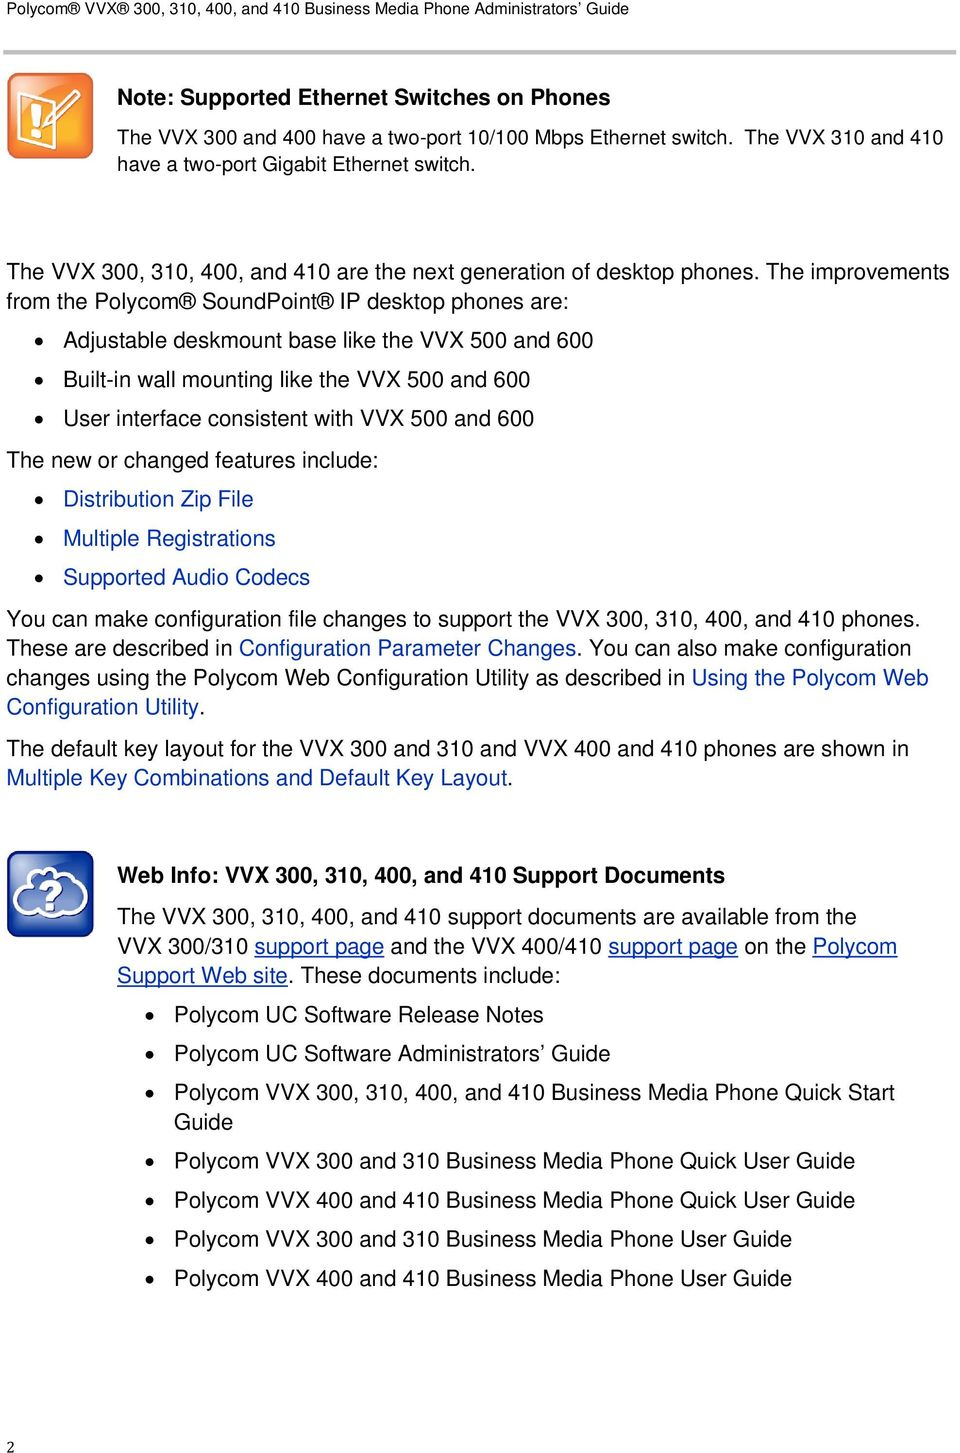 Polycom VVX 300, 310, 400 and 410 Business Media Phone - PDF